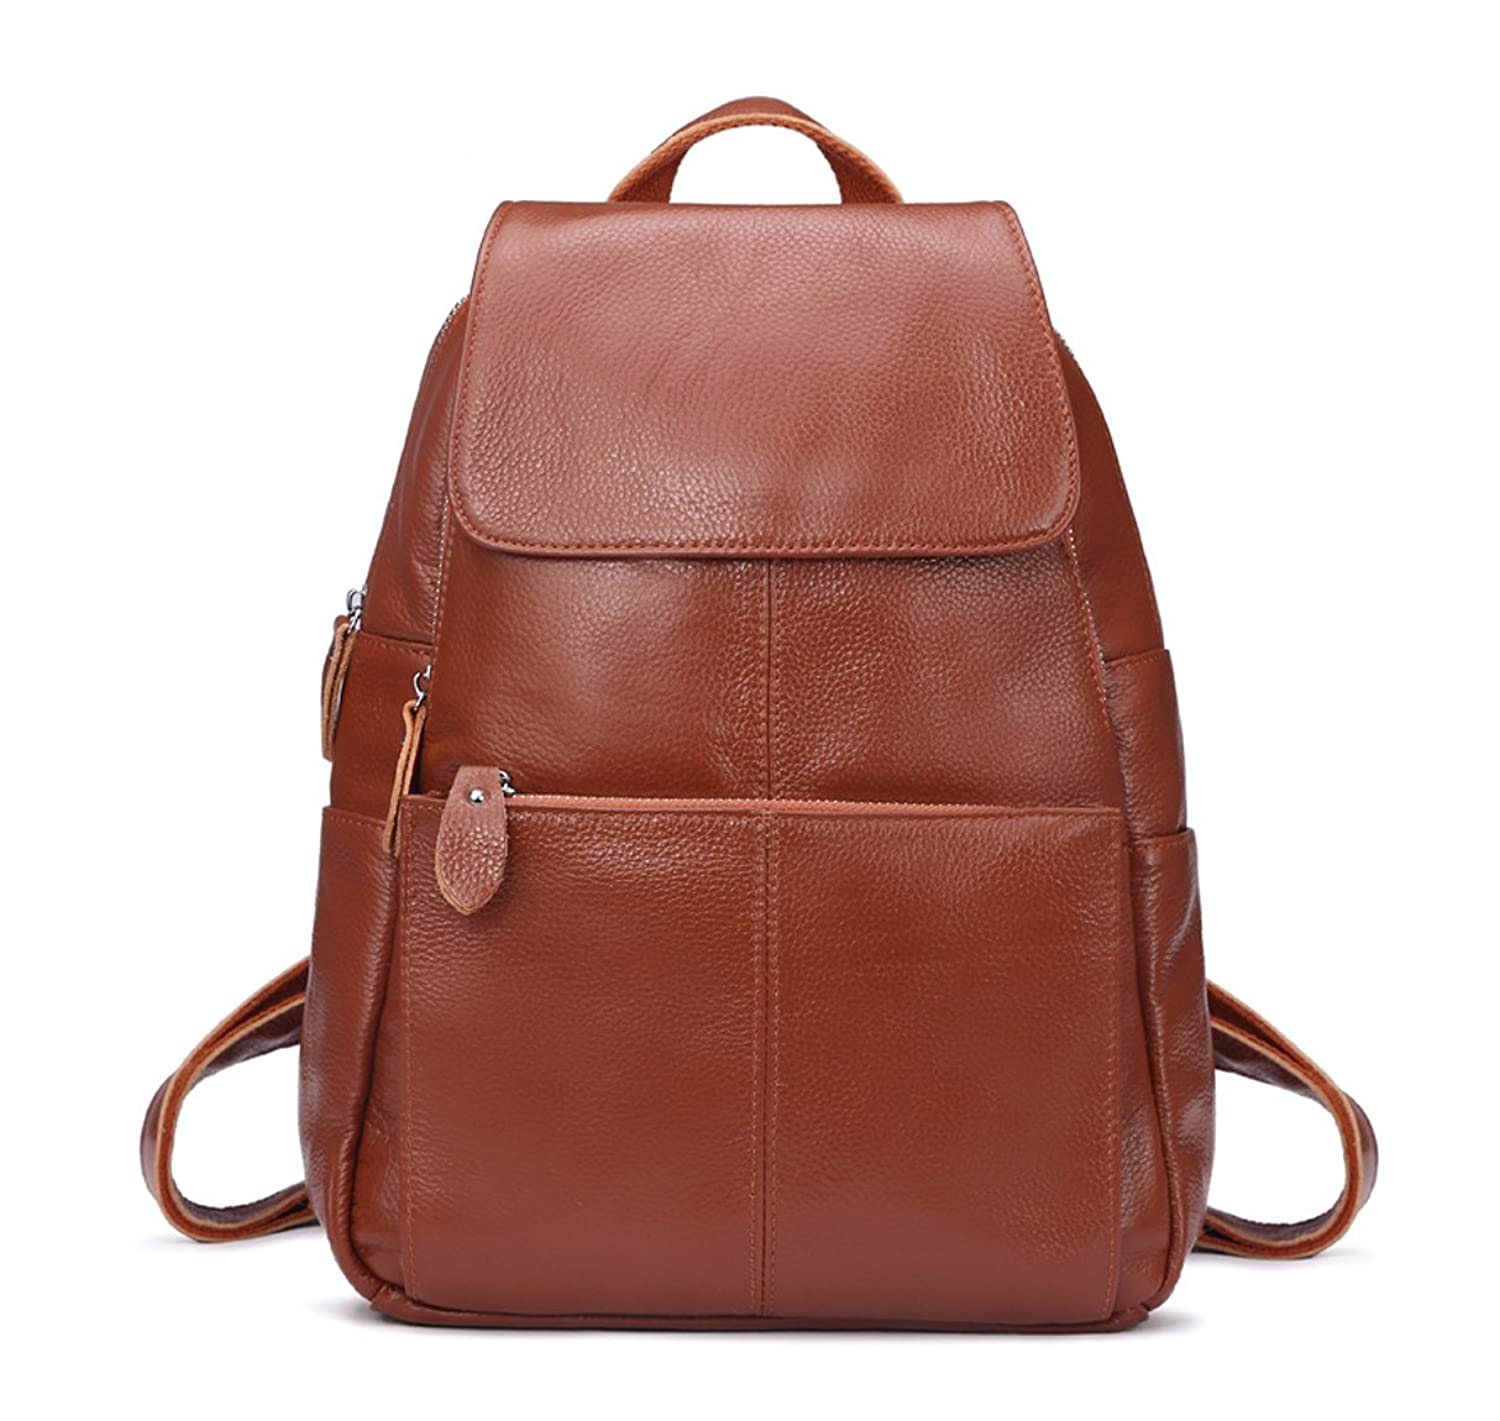 Longzibog Leather 2016 New College School Laptop Backpack -Straps Reinforced Brown